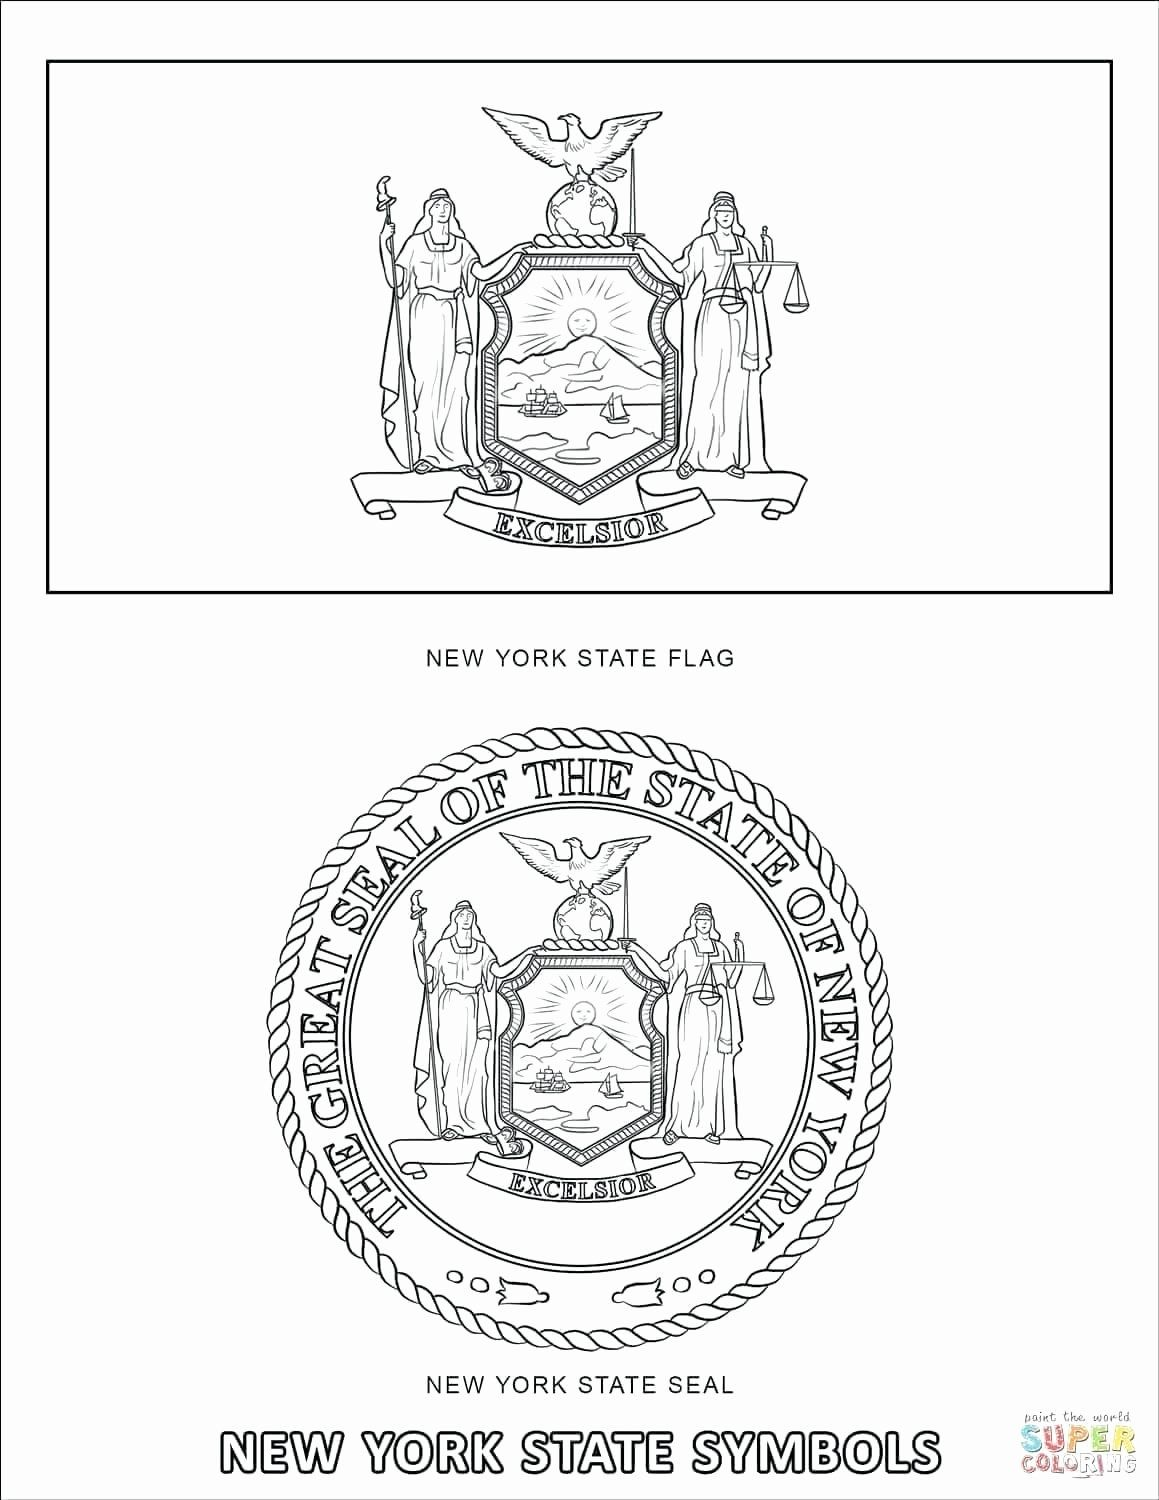 Louisiana State Flag Coloring Page Elegant New York State Coloring Page Findpage